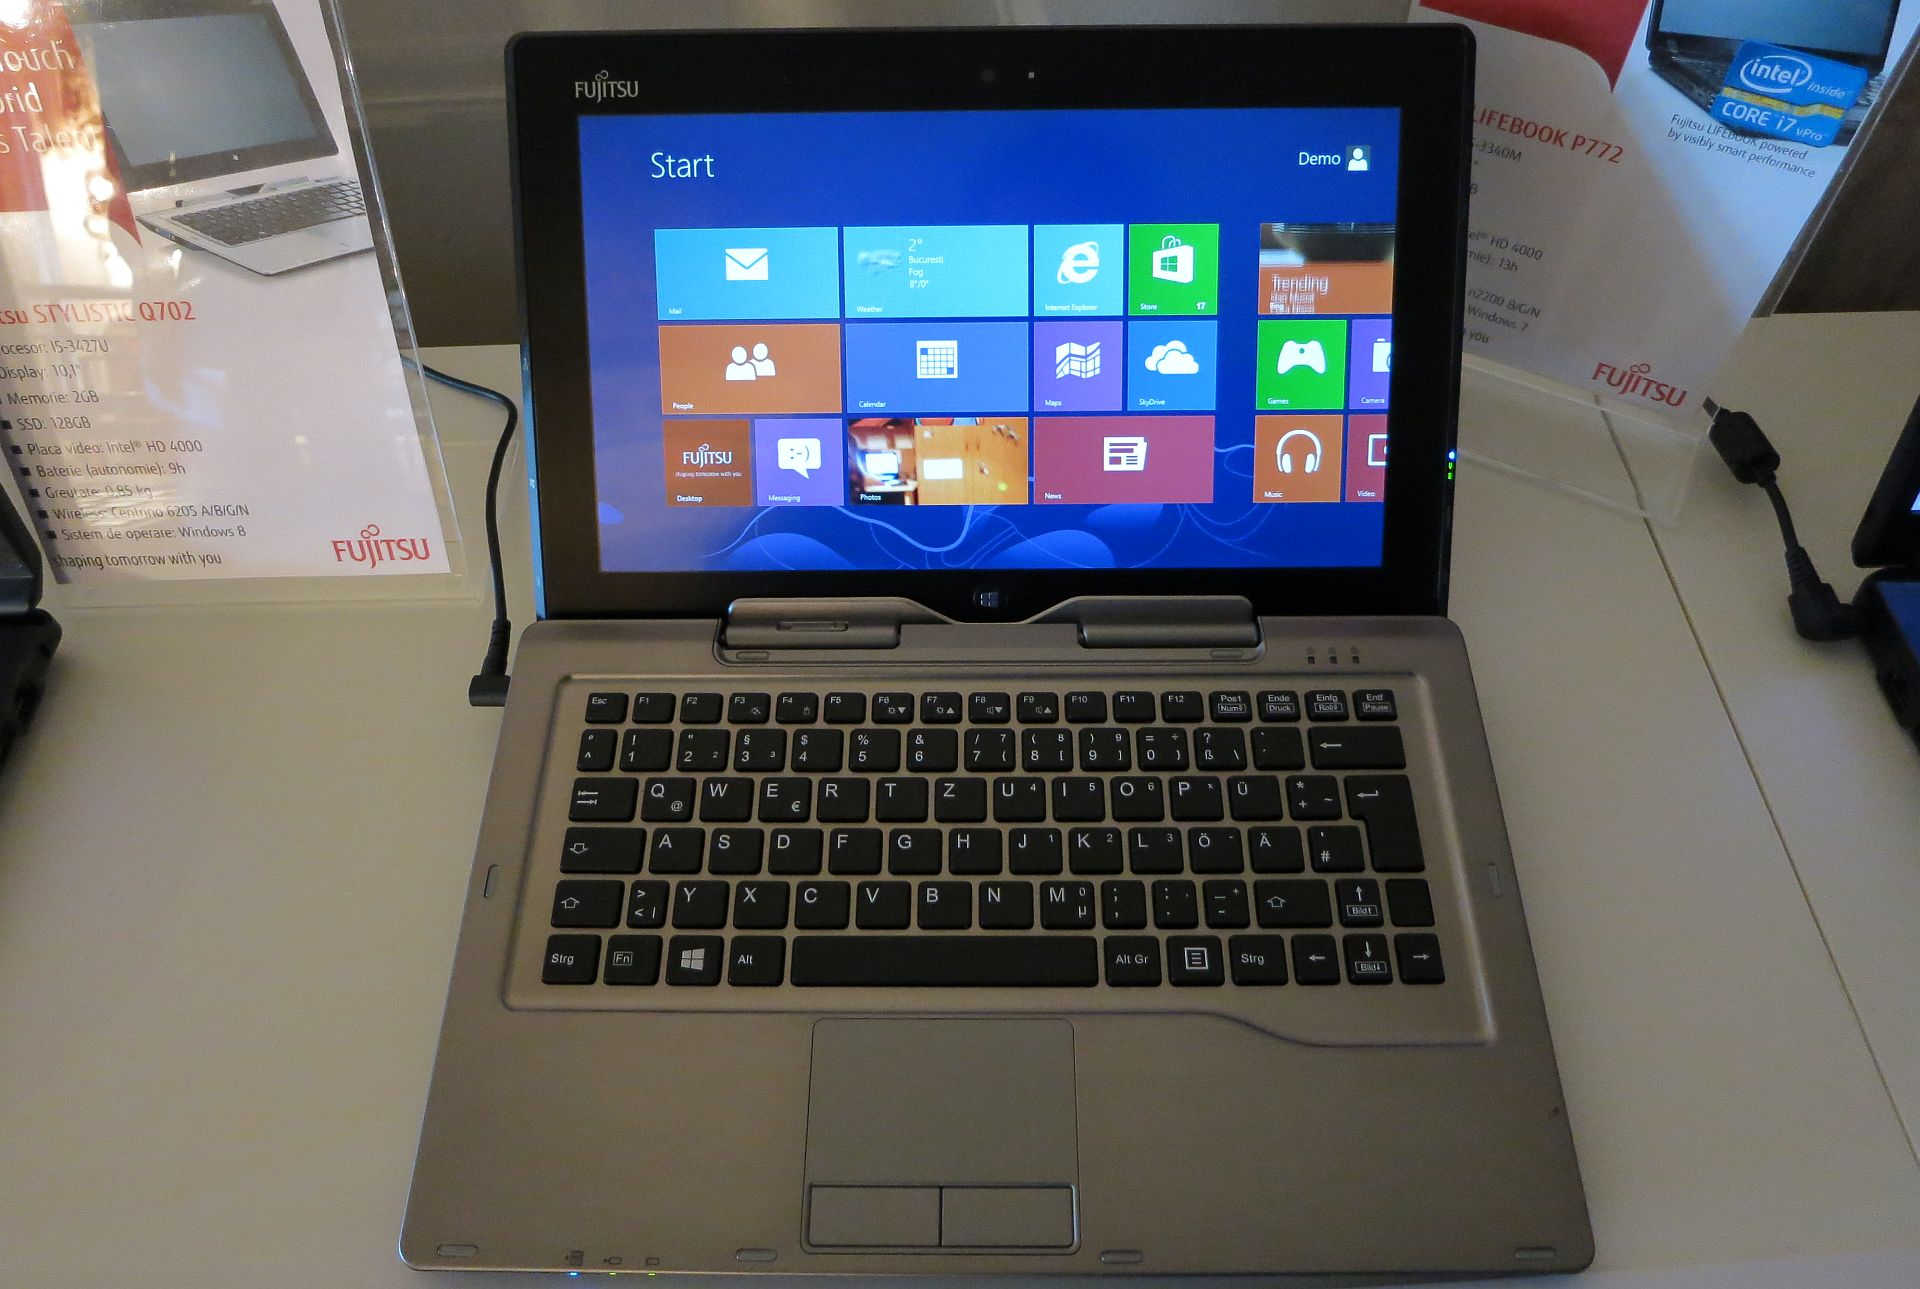 Fujitsu Stylistic Q702 – O tableta cu Windows 8 Pro